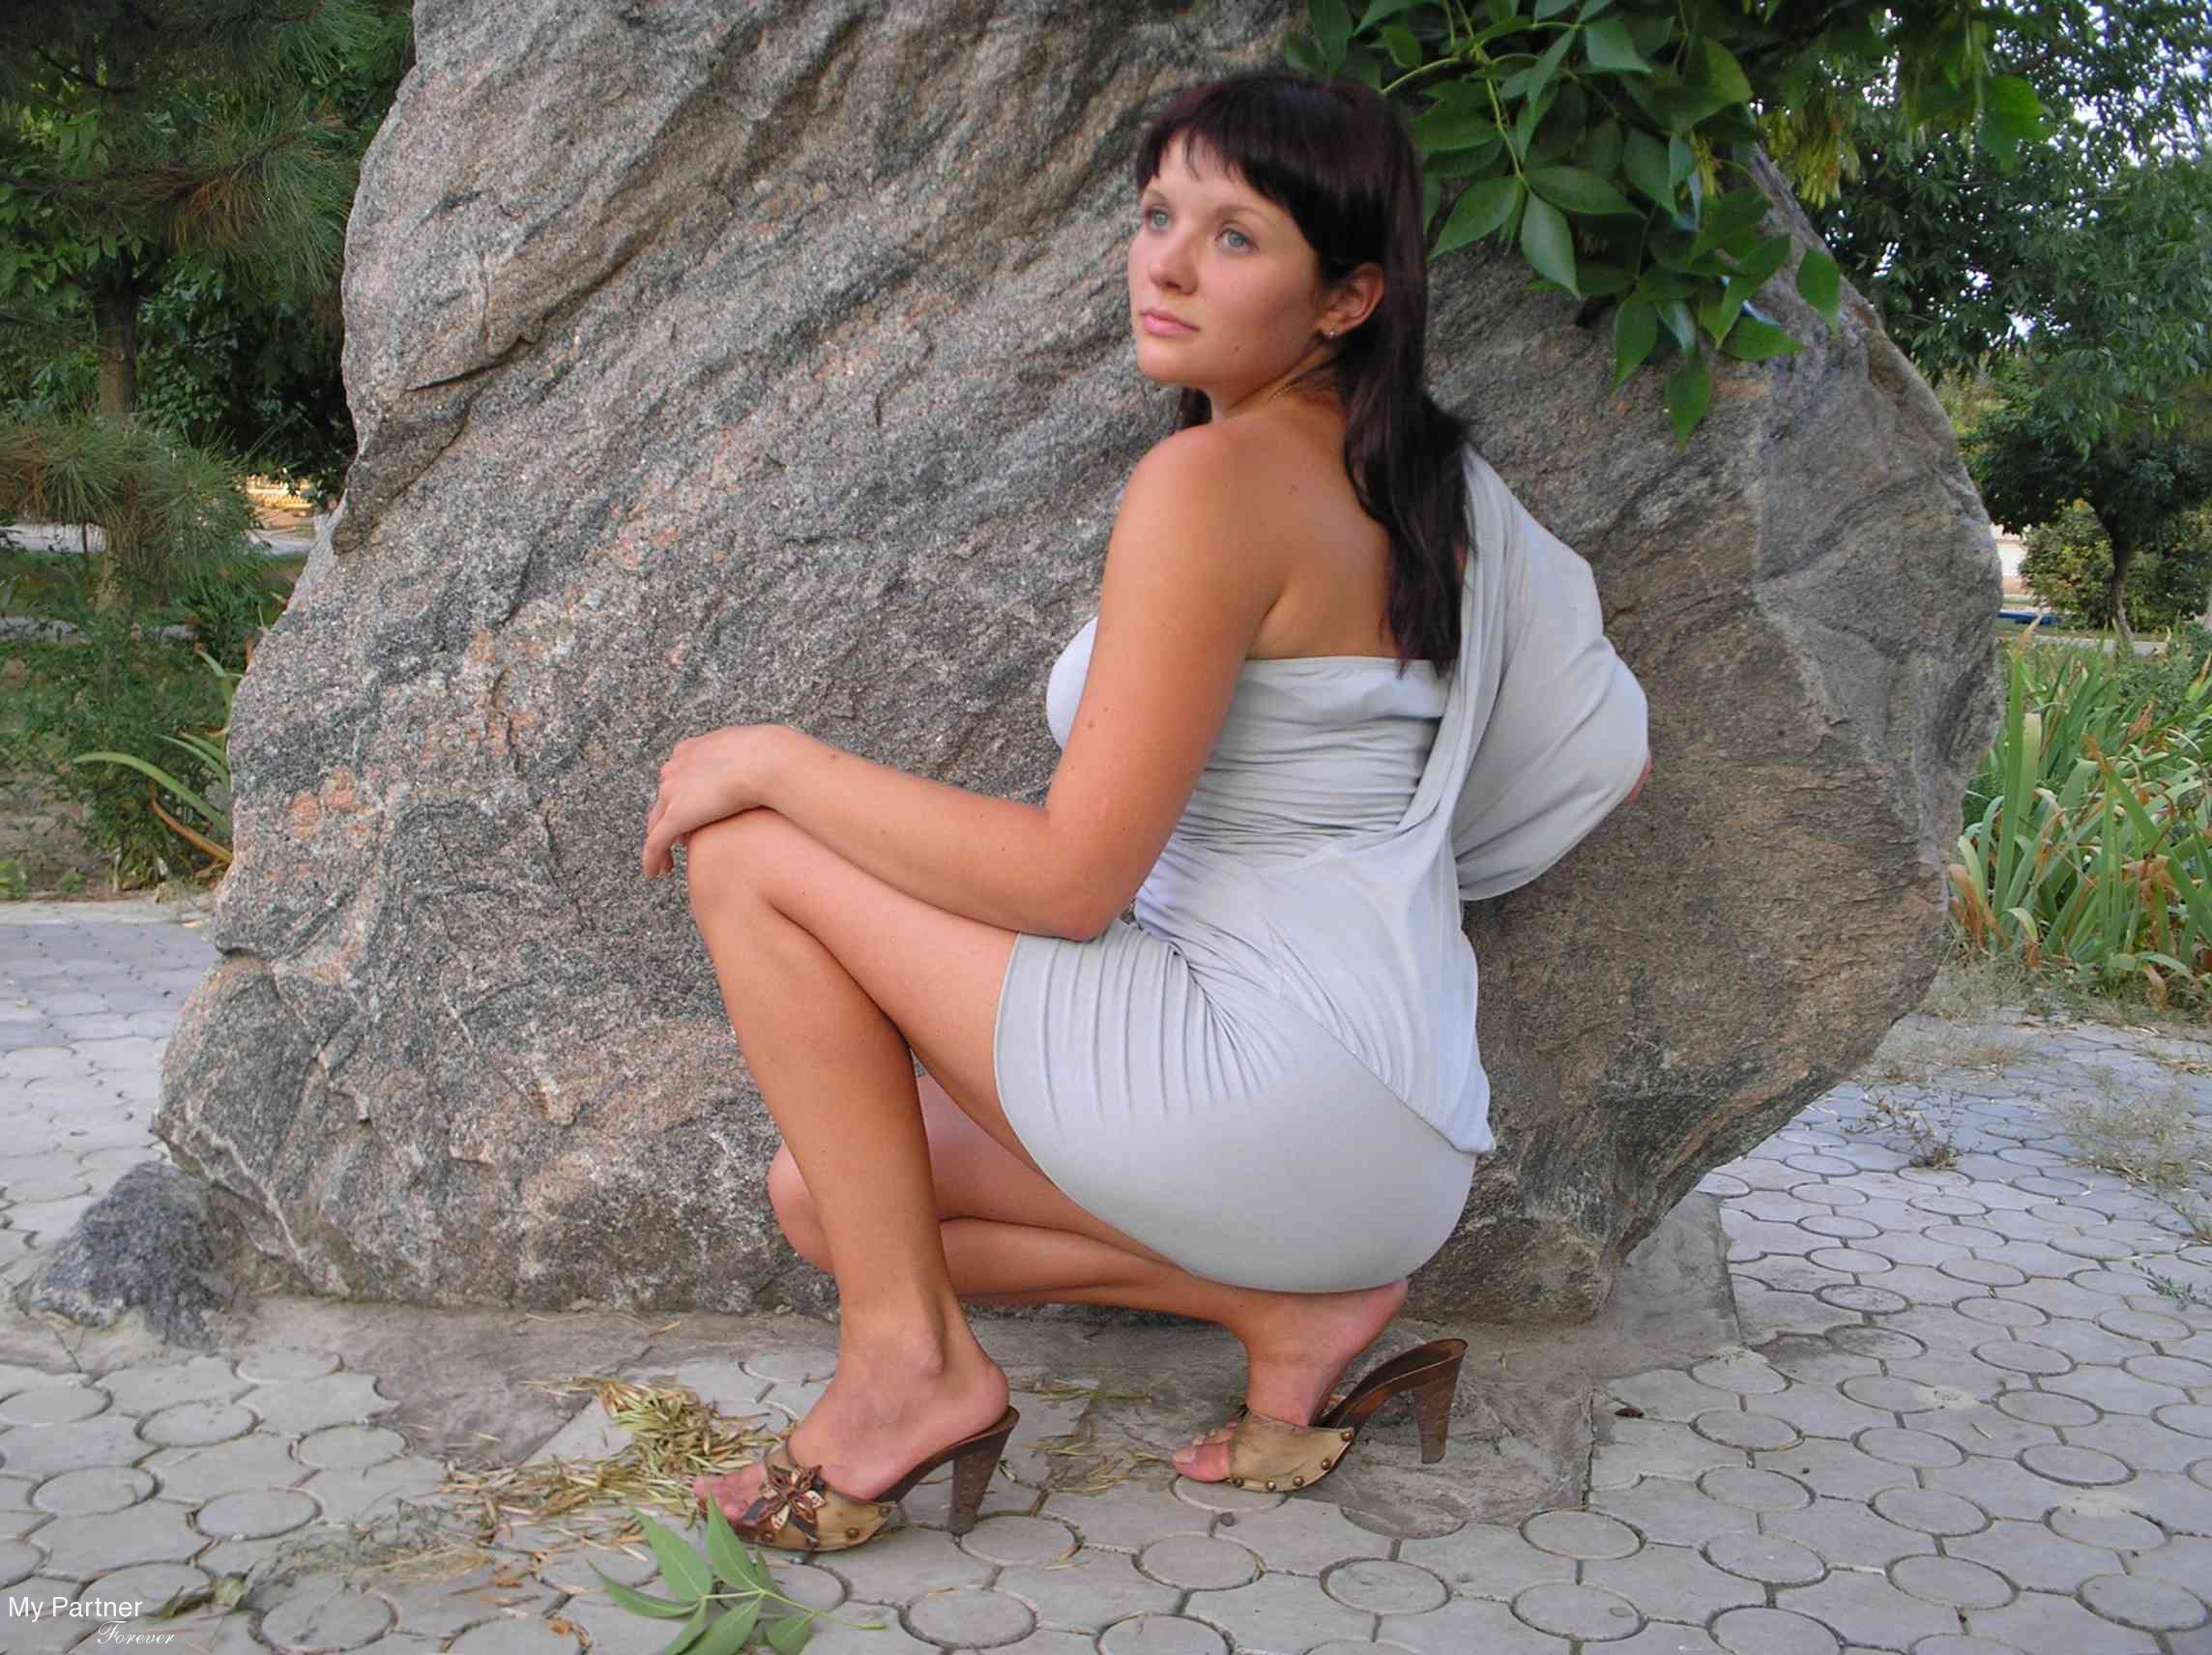 Free east european dating sites